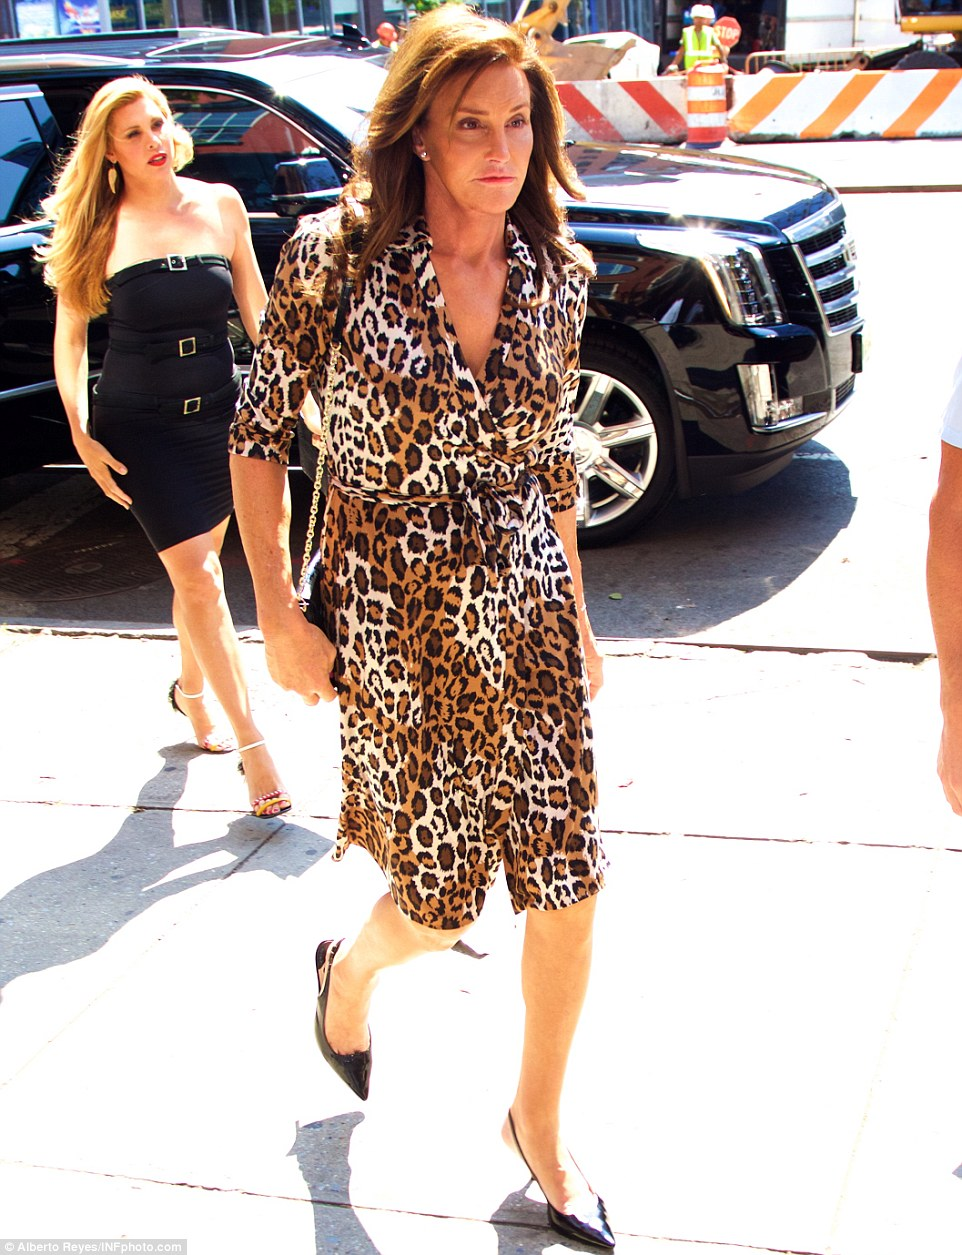 Caitlyn Jenner shows legs in two skimpy outfits in New York